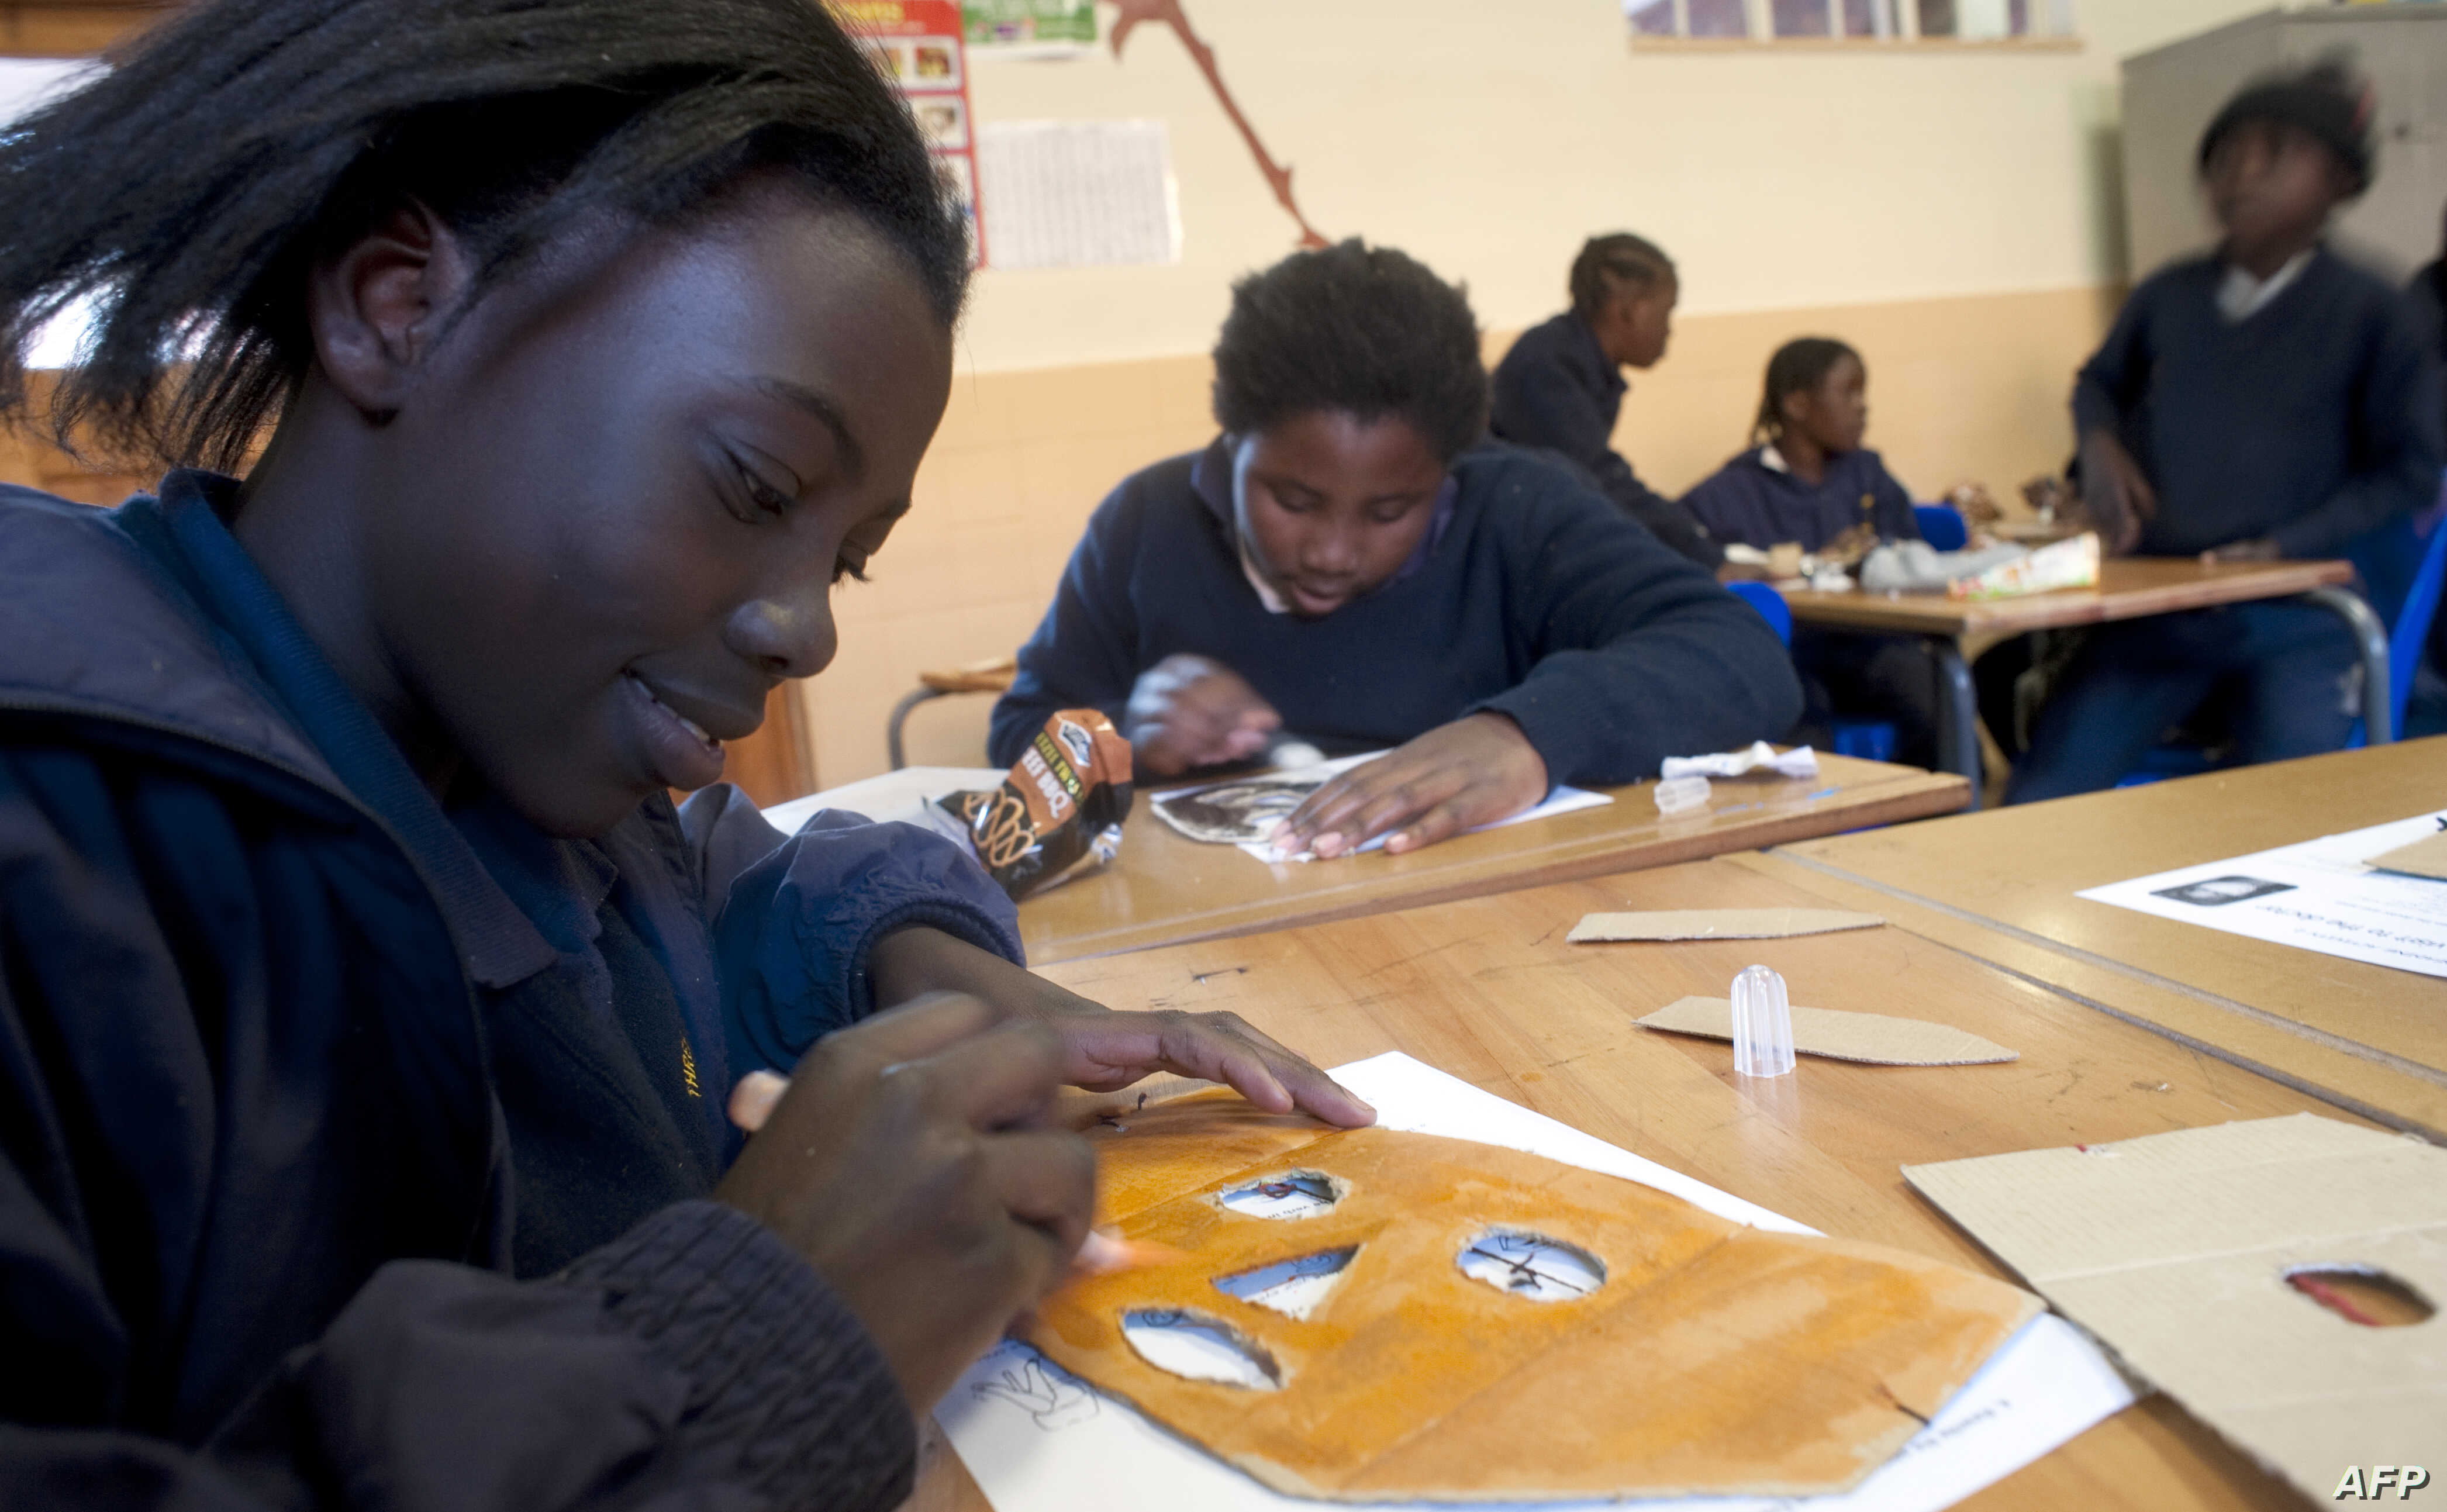 Schoolchildren attended classes at the Sacred Heart College in Johannesburg.